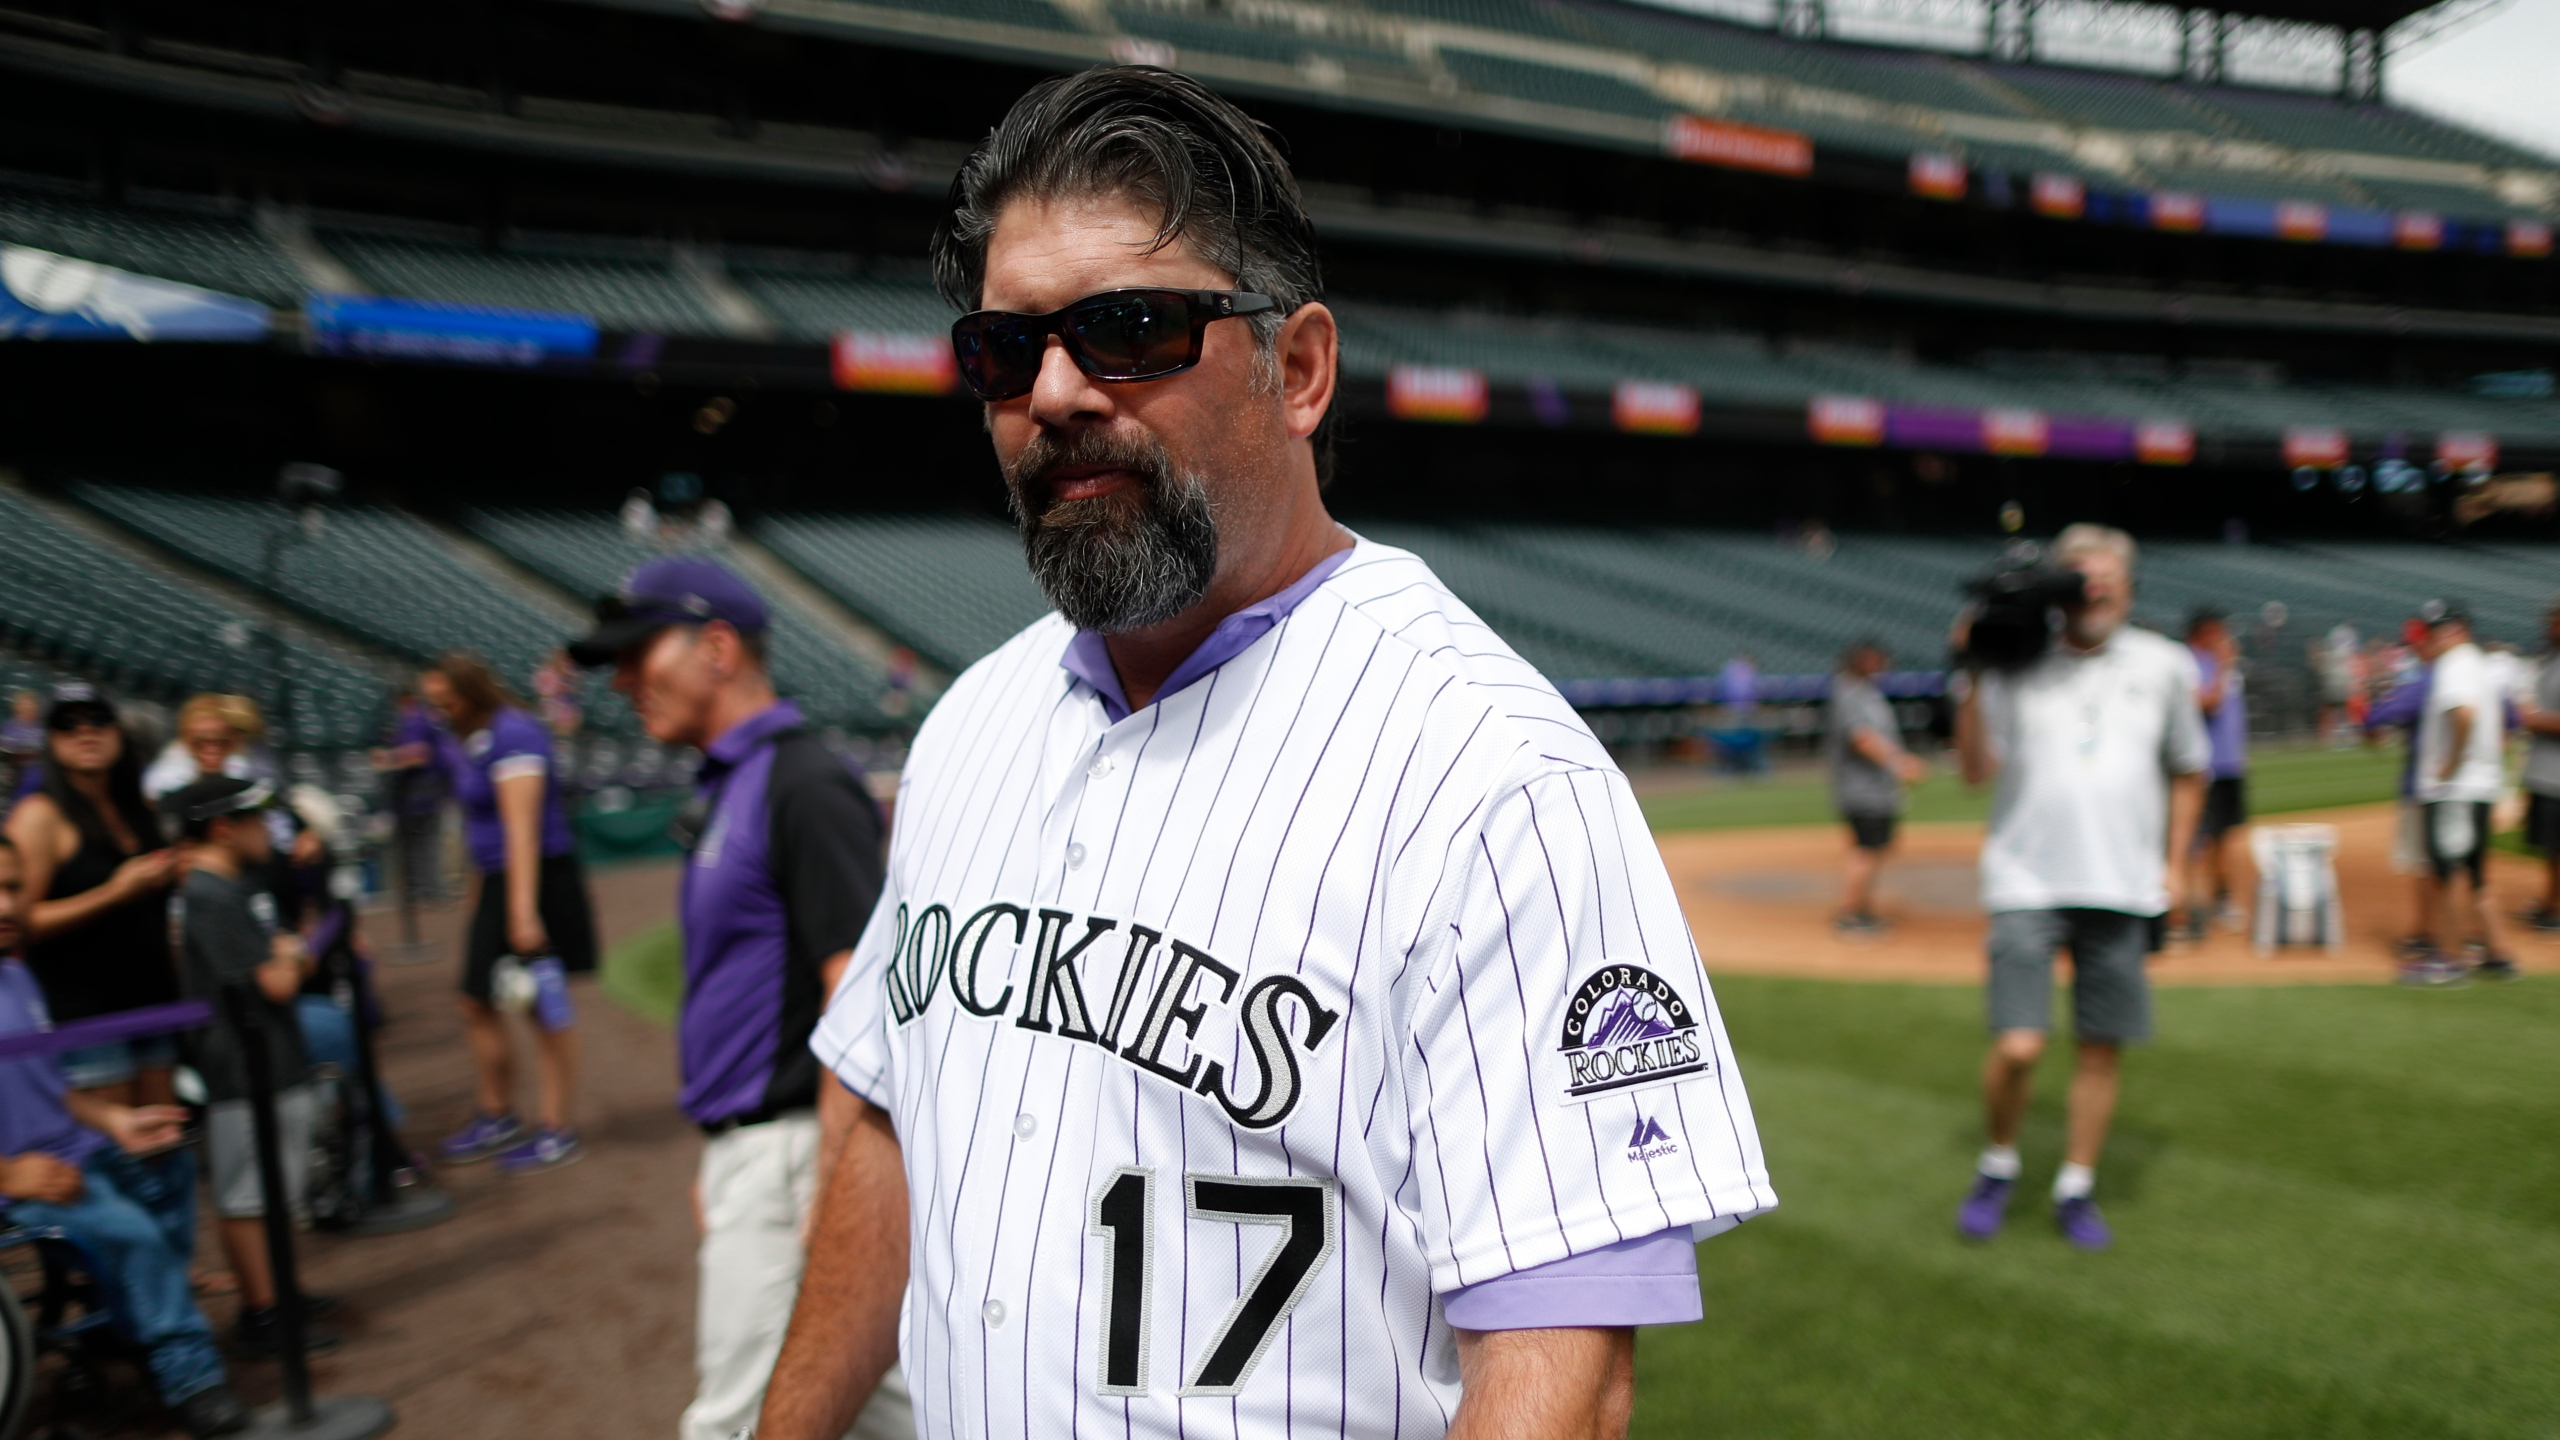 Retired Colorado Rockies first baseman Todd Helton during picture day for the Rockies before a baseball game against the Miami Marlins Saturday, June